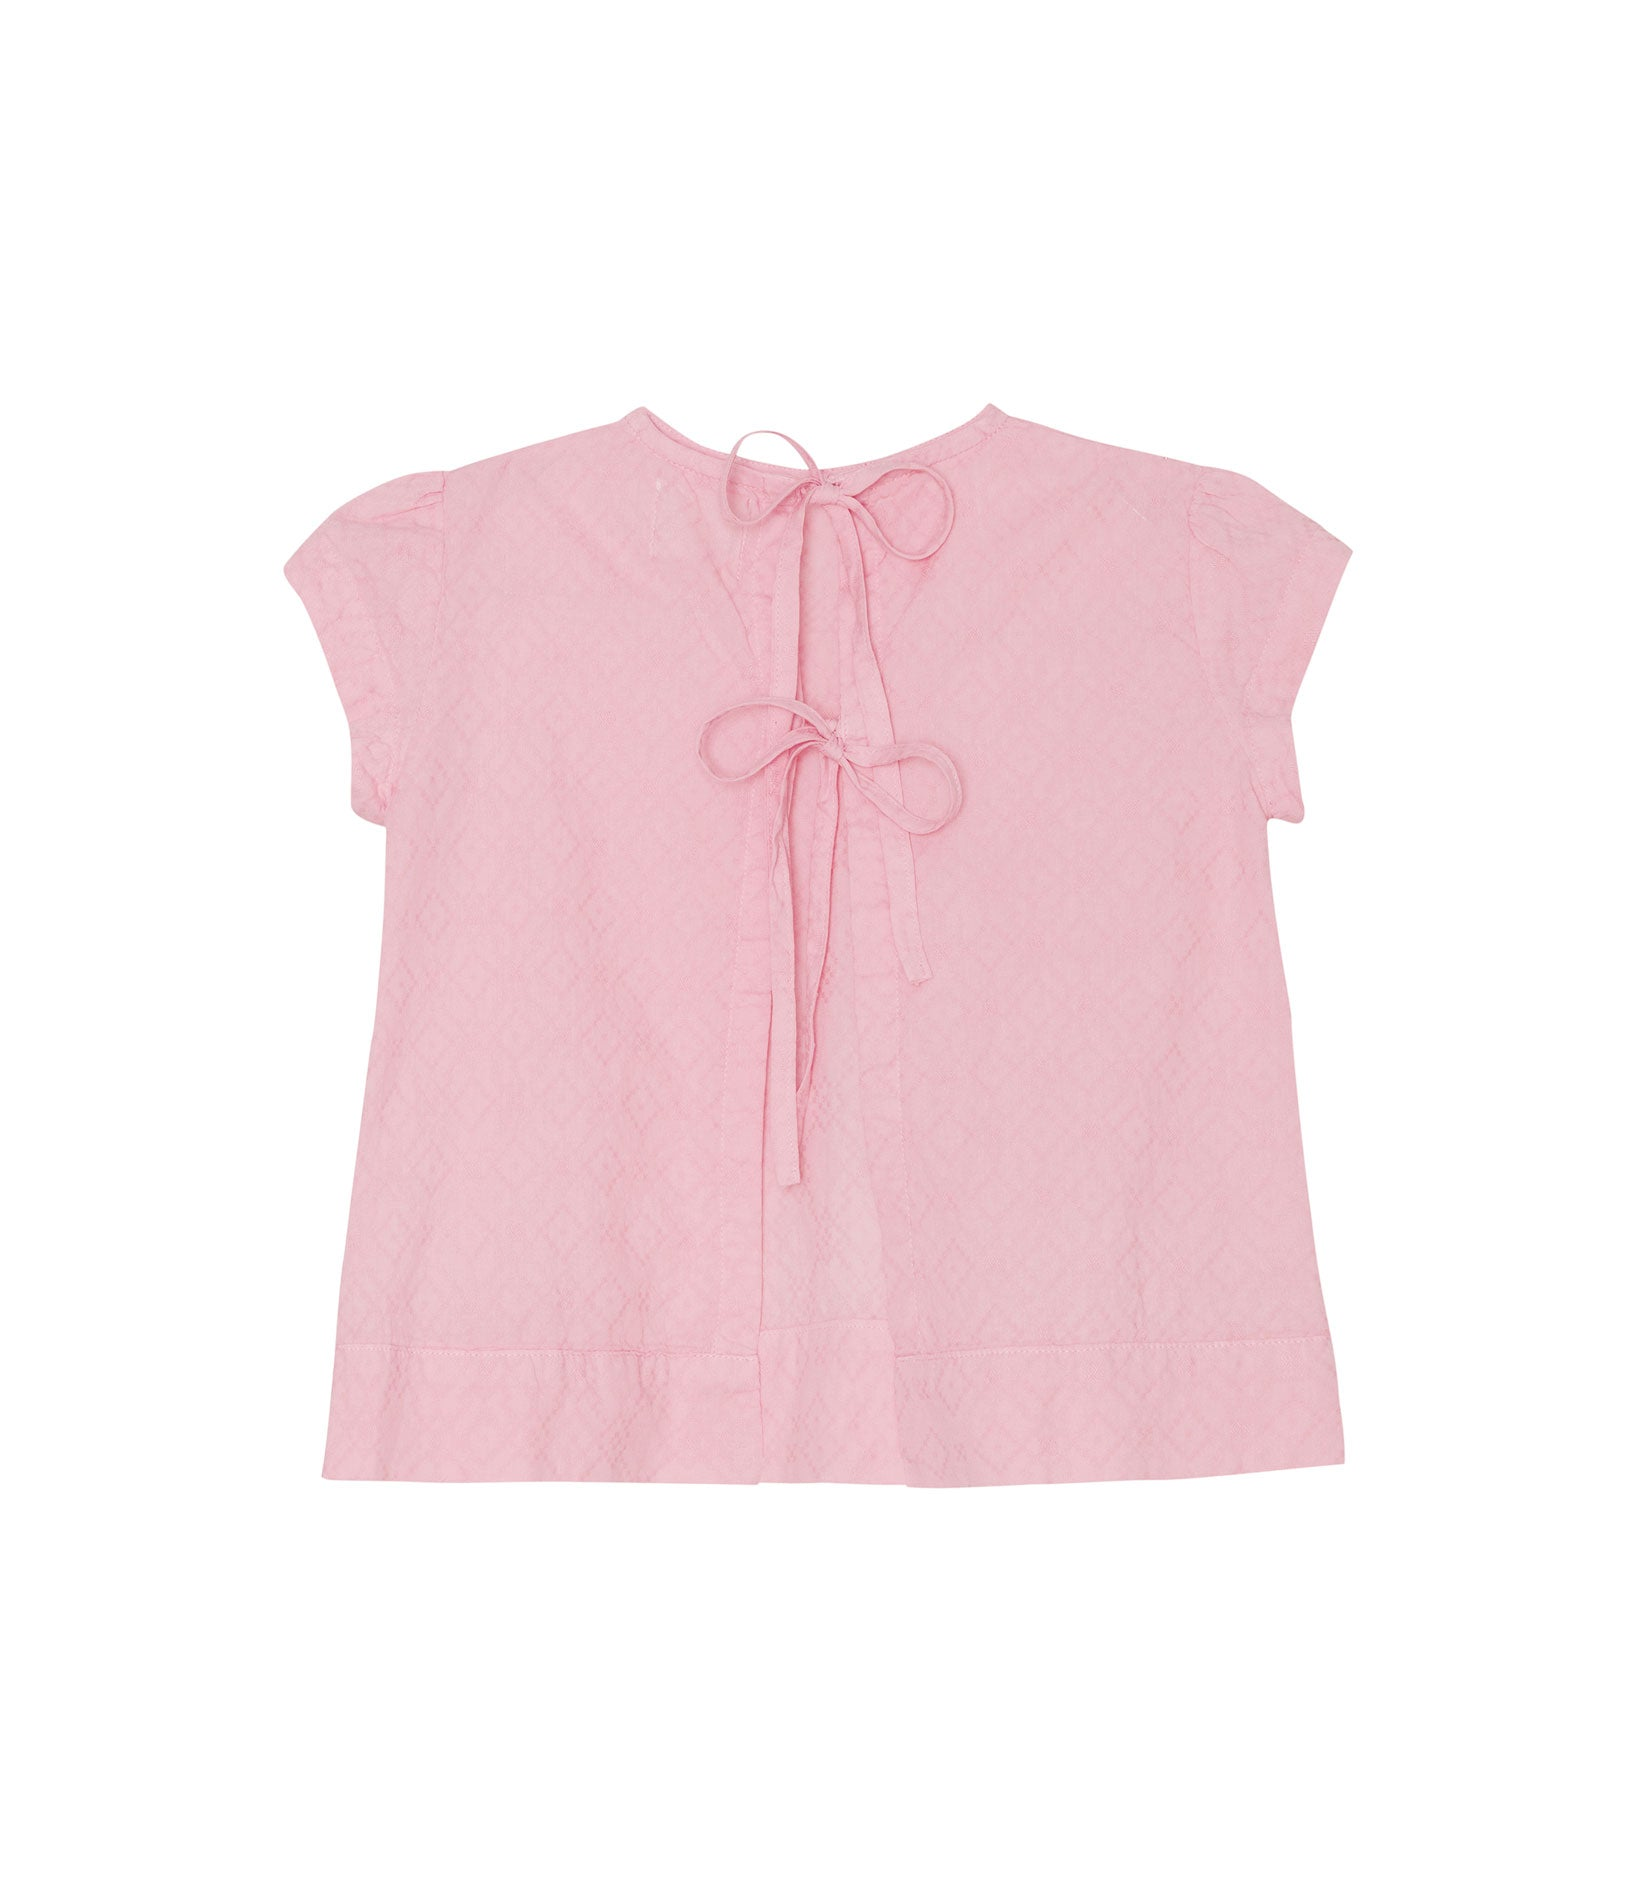 Yellow Pelota Ribbons Blouse - Pink